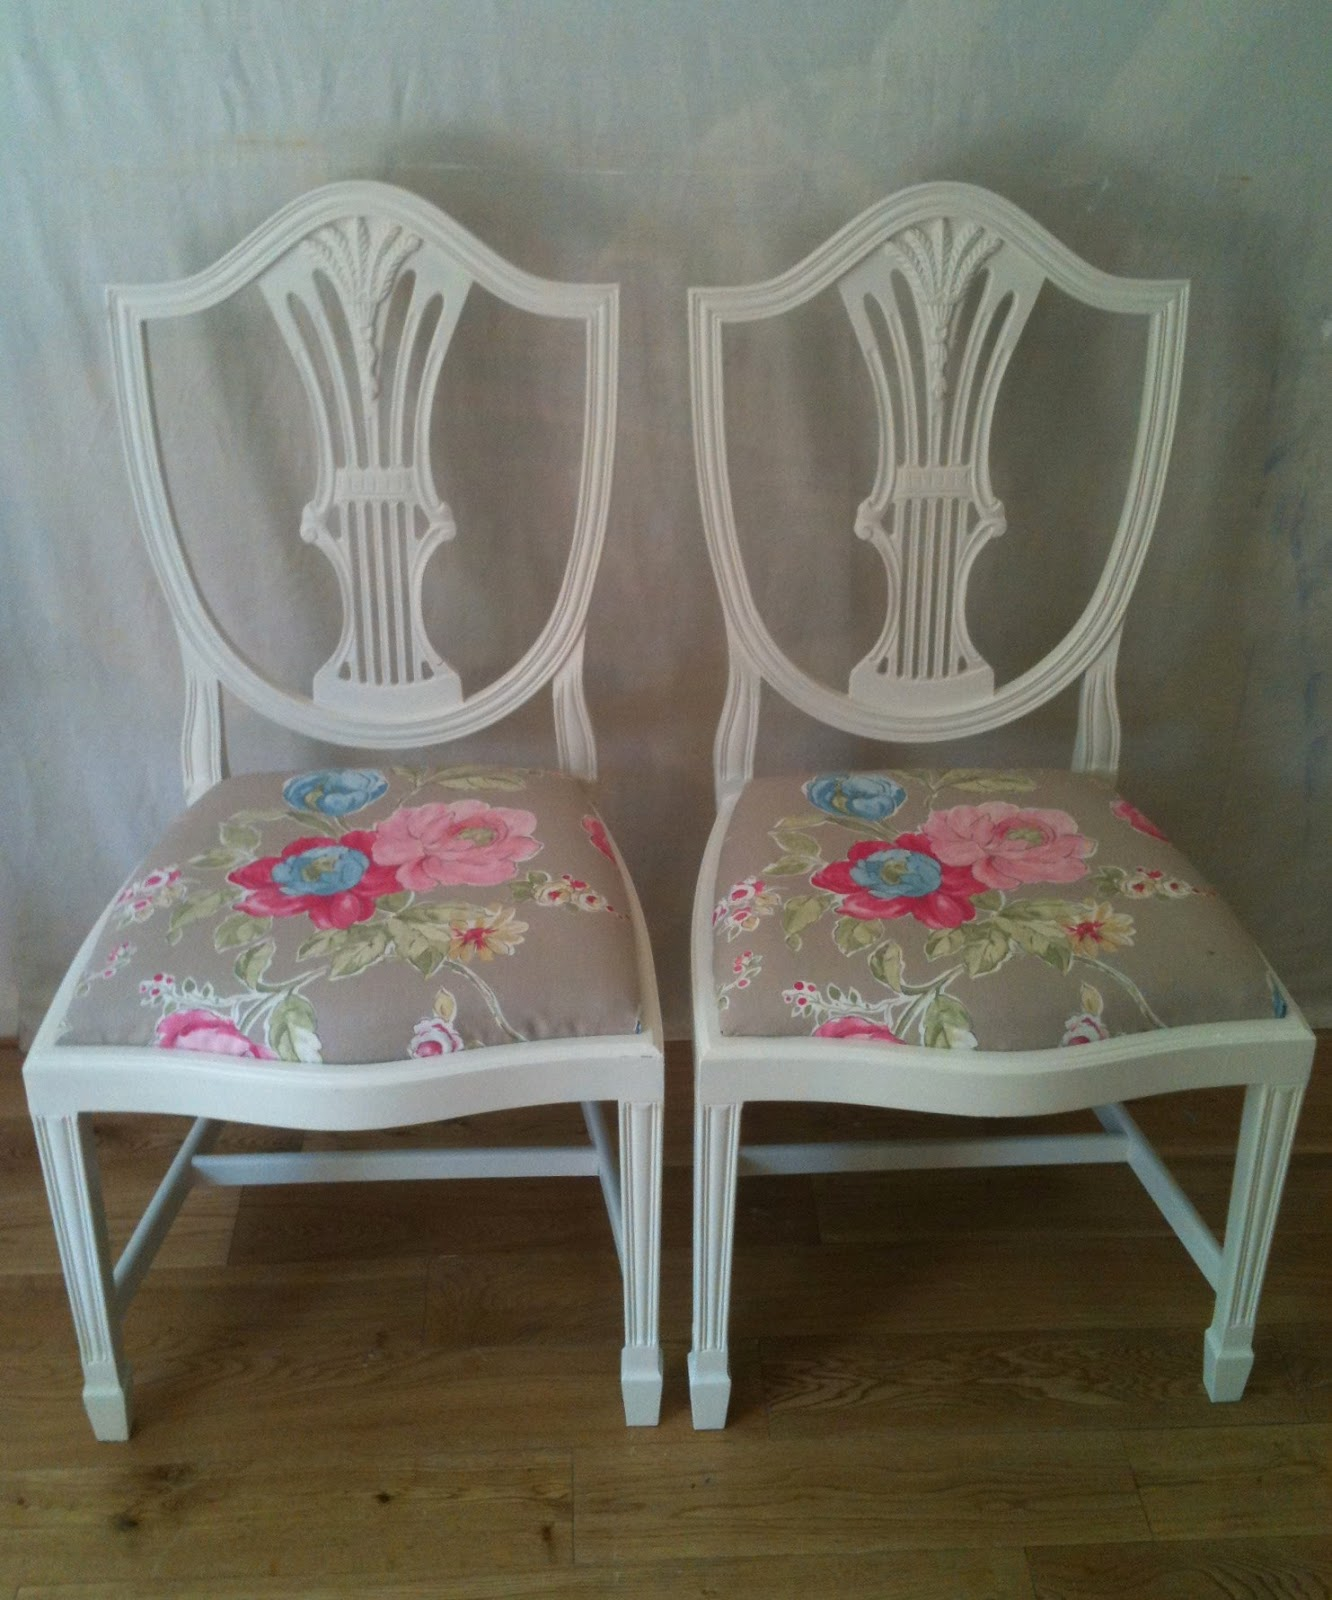 Upcycled Dining Room Chairs Vinyl Chair Cushion Covers Bowiebelle Vintage And Furniture